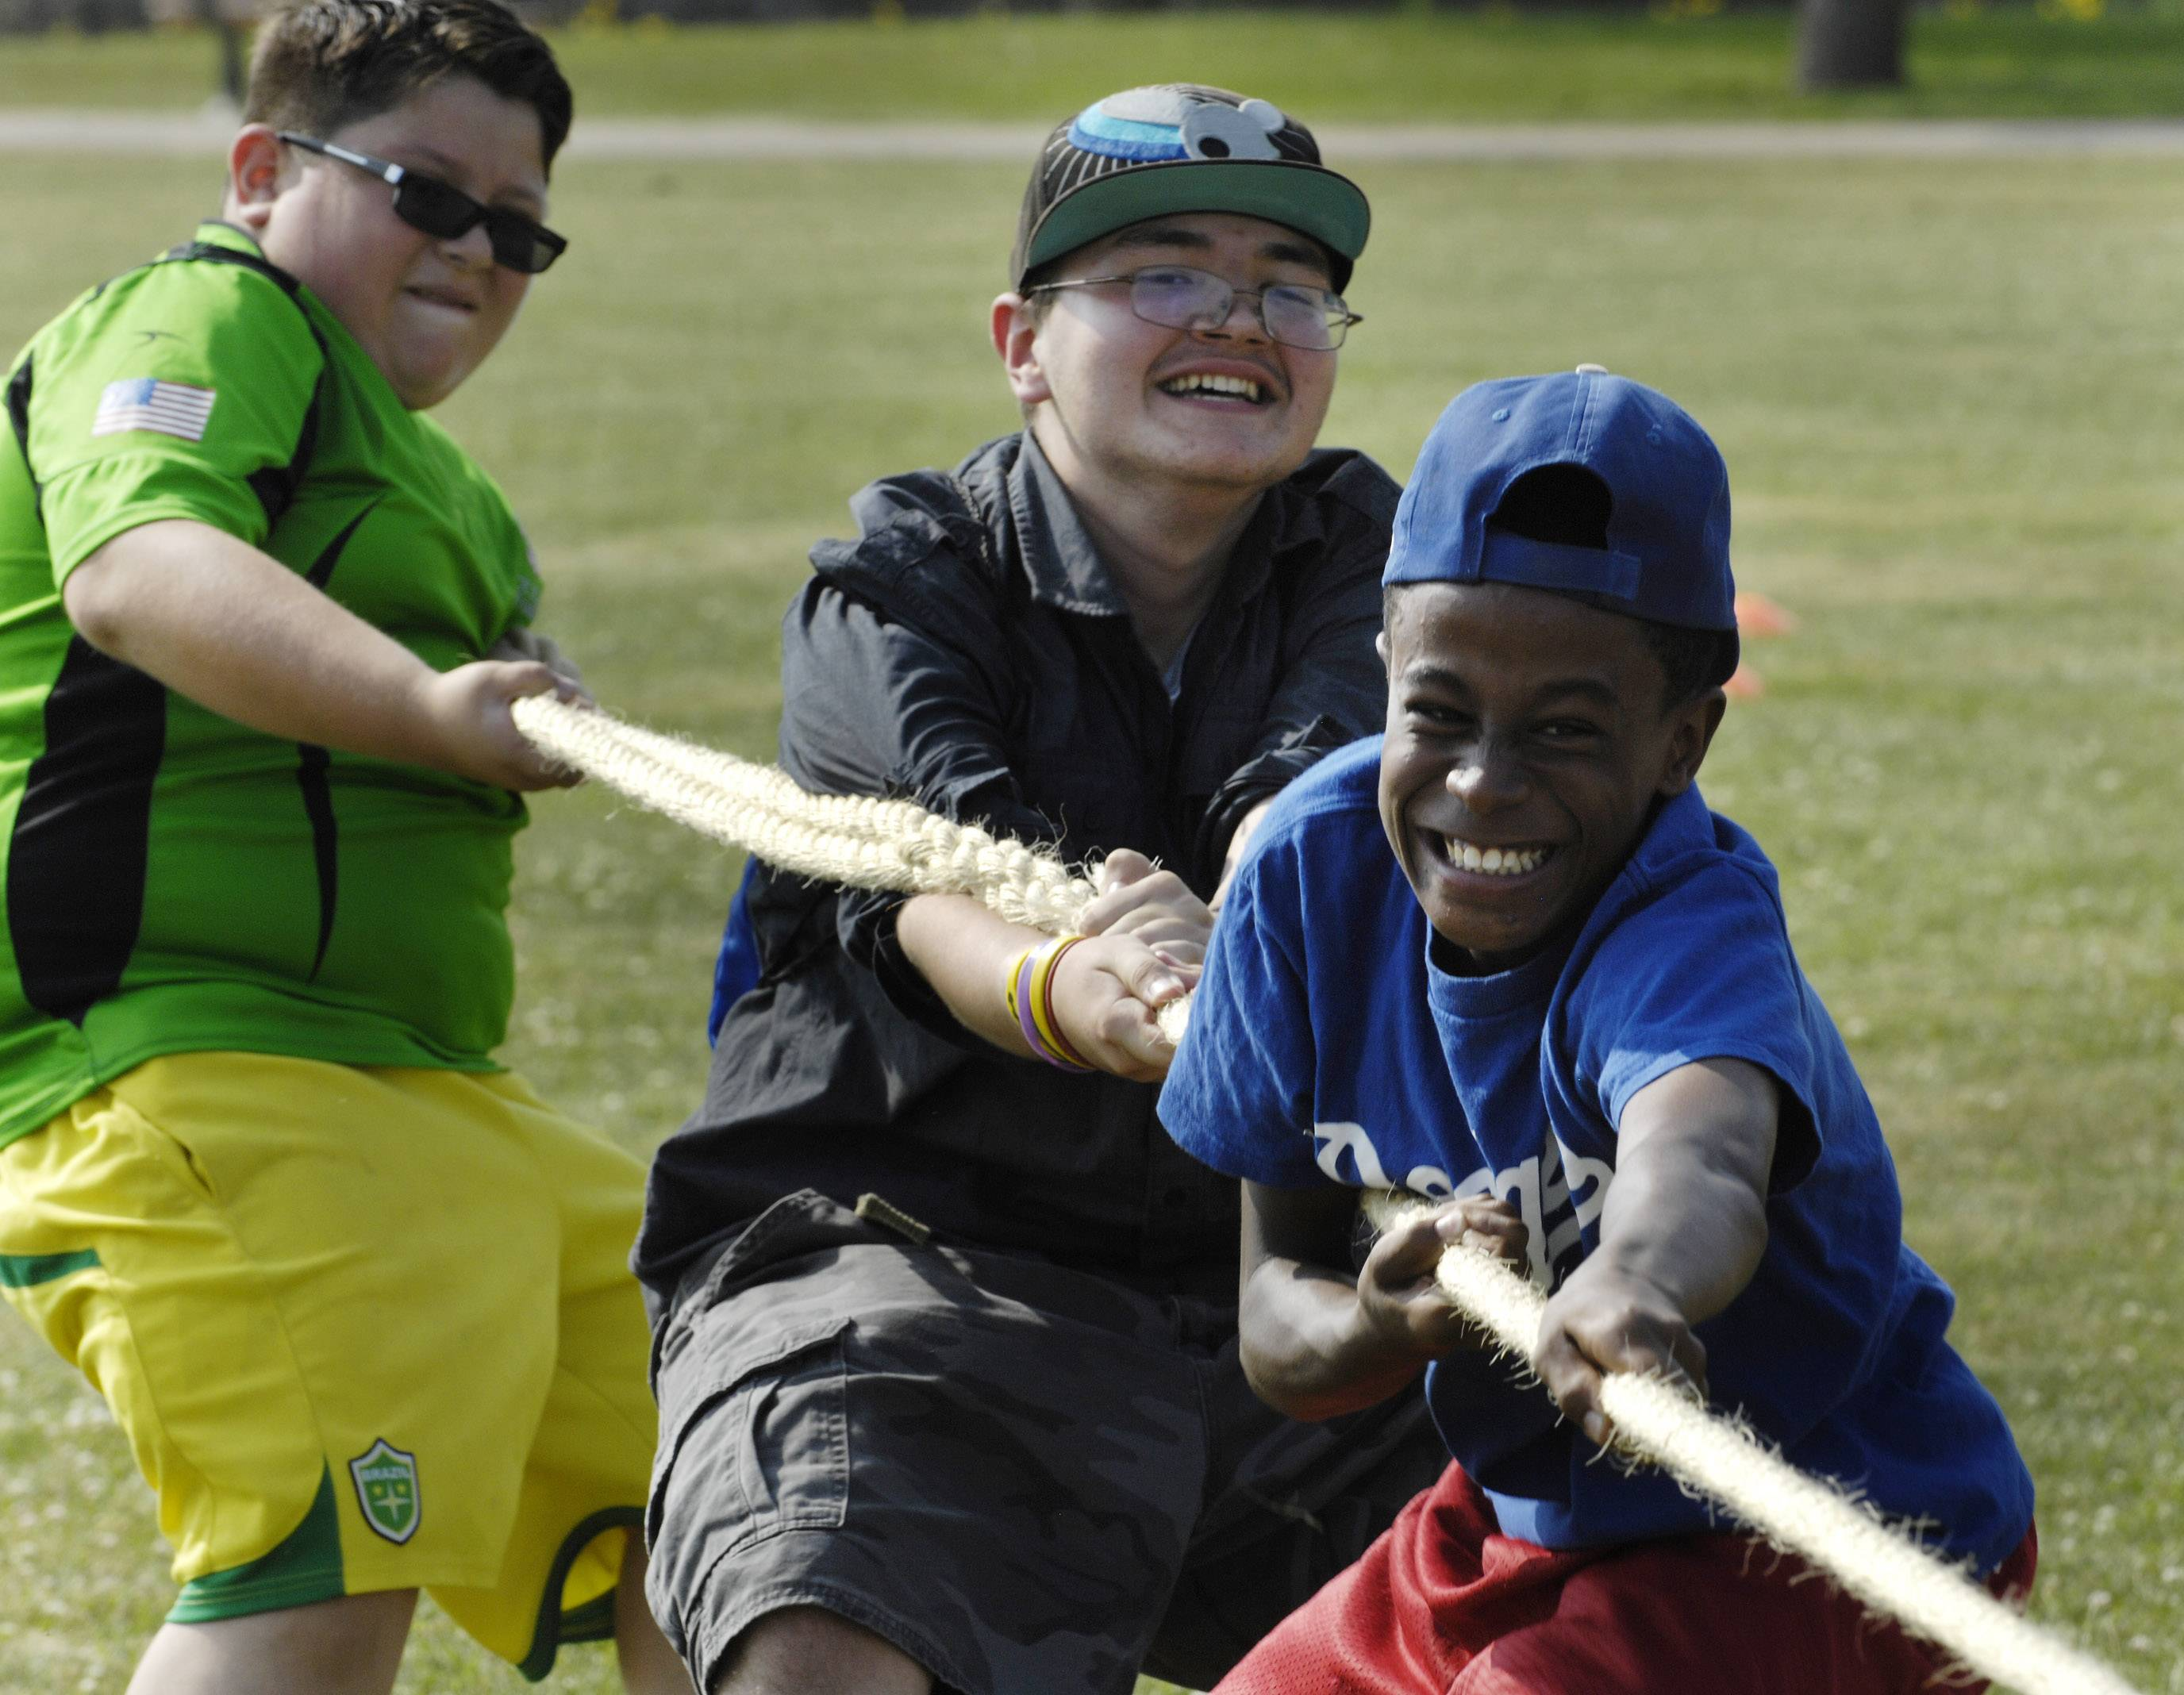 Front to back, Chauncey Broussard, 13, Semin Muminovic, 14, and Joshua Lopez, 12, all of Hoffman Estates participate in a tug-of-war Saturday during the Party in the Park at Highpoint Park in Hoffman Estates.